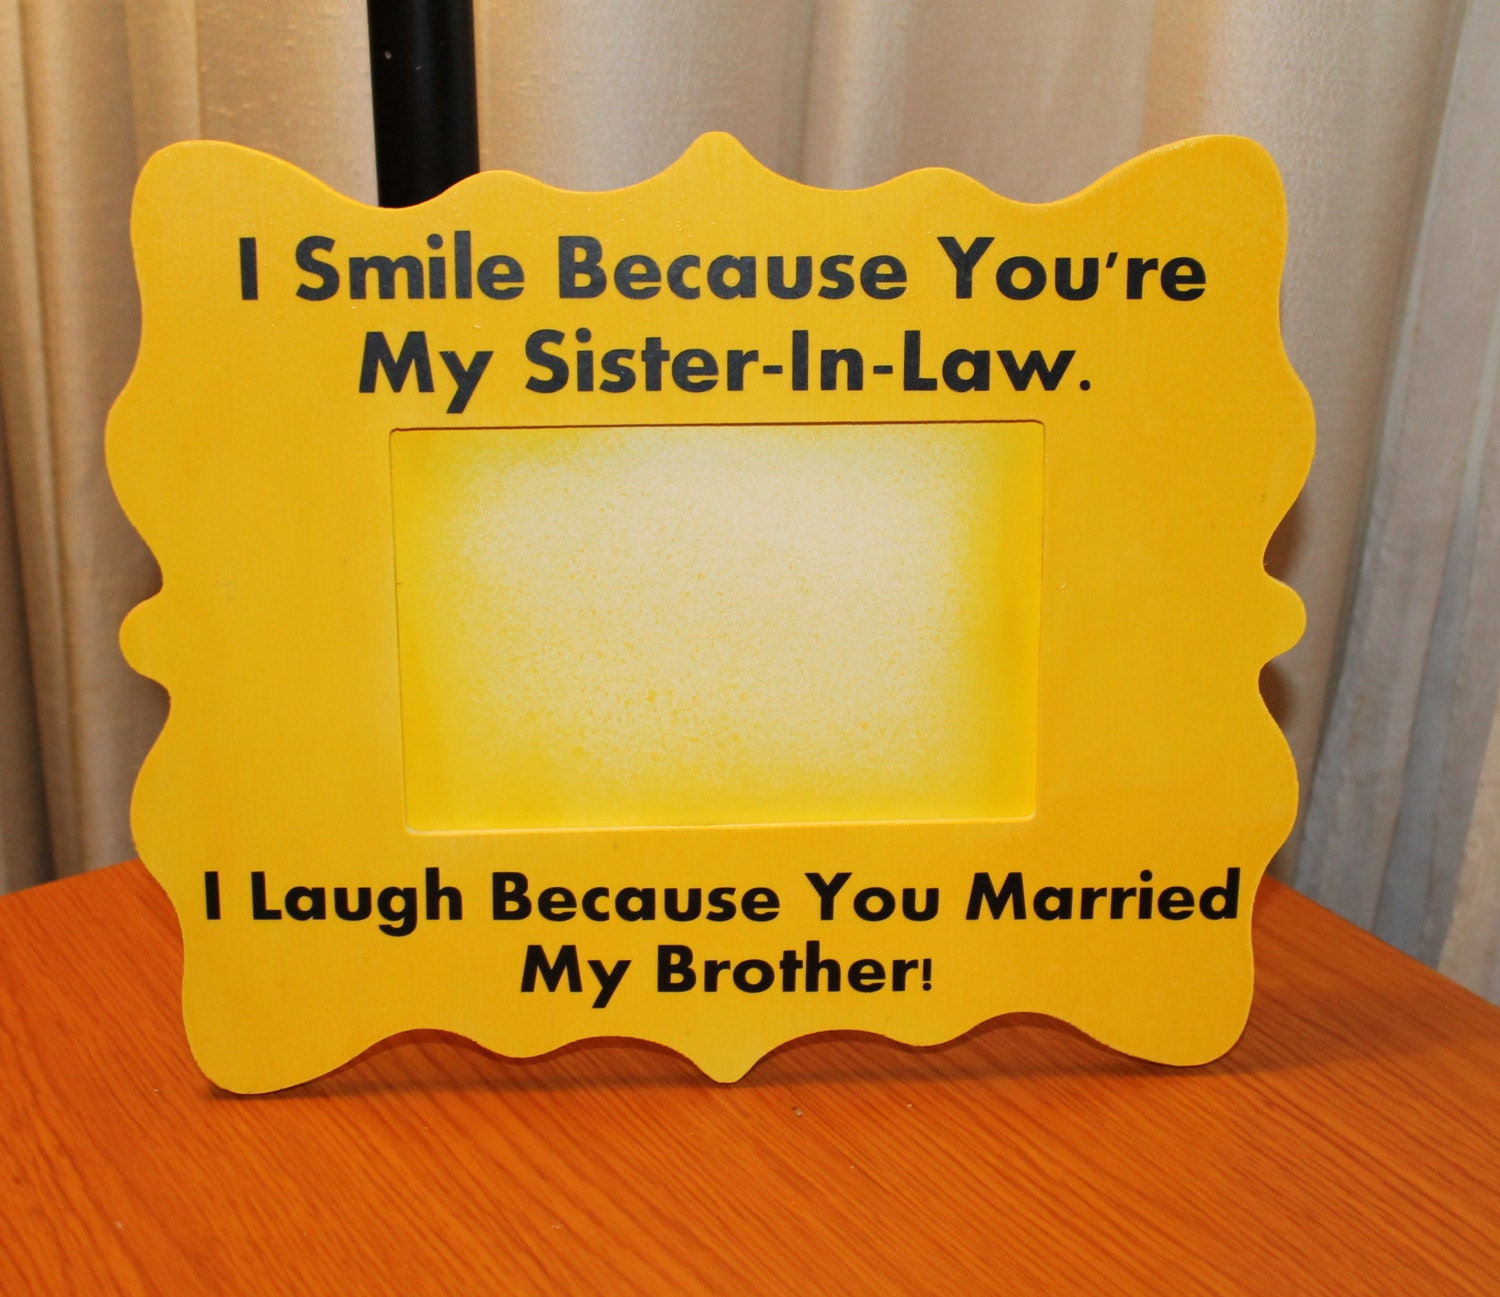 Quotes For My Sister In Law: Sister In Law Picture Frame Quote I Smile Because You Are My